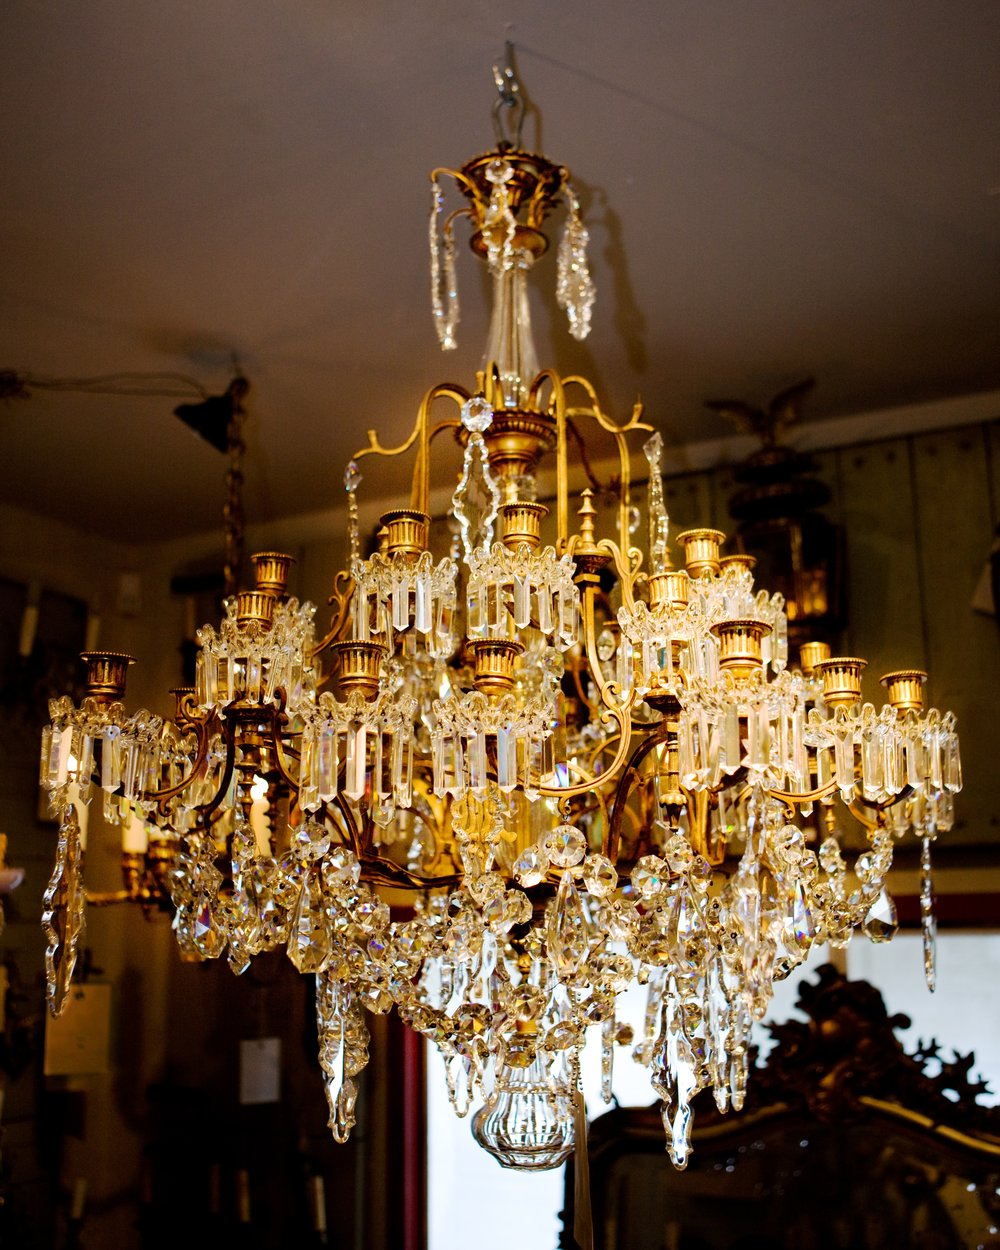 Antique Bronze and Crystal French Chandelier, Attributed to Baccarat